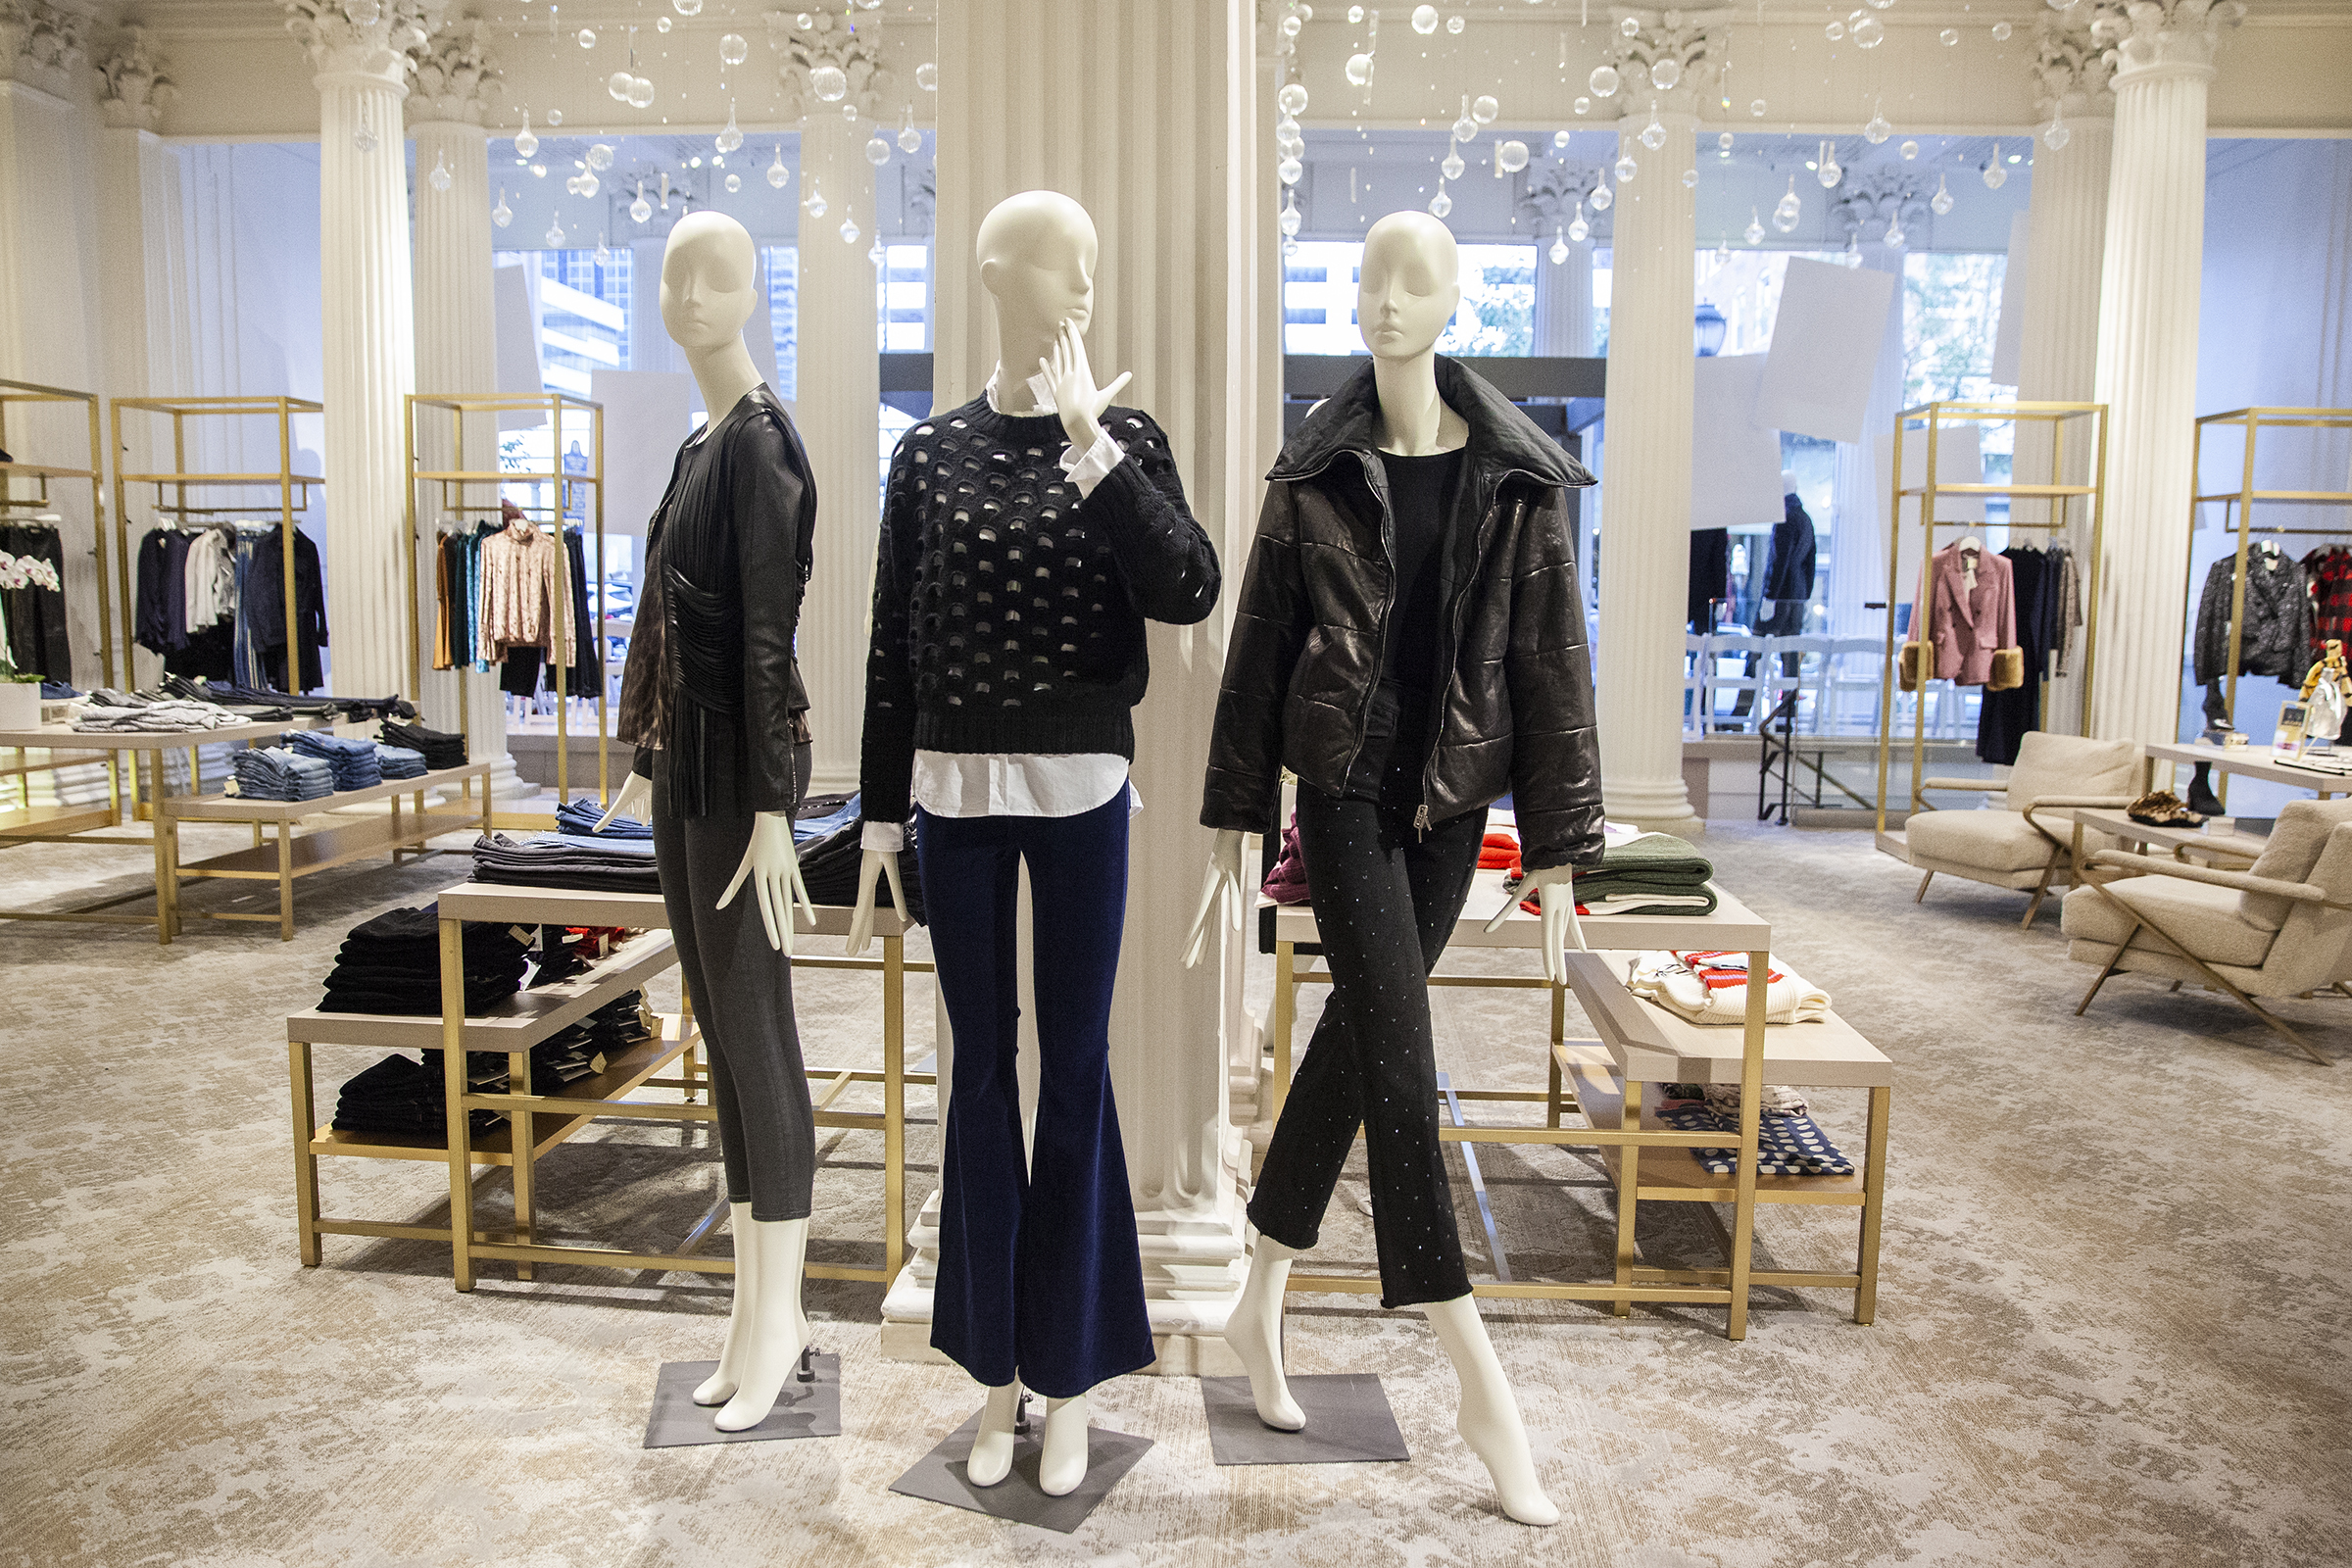 A look at the women´s clothing selection at Boyds Philadelphia, the landmark department store at 1818 Chestnut on Friday, Sept. 28, 2018. Deborah Soss, a former accessories buyer for Bergdorf Goodman, is now doing the bulk of the buying for the improved women´s section of Boyds. HEATHER KHALIFA / Staff Photographer